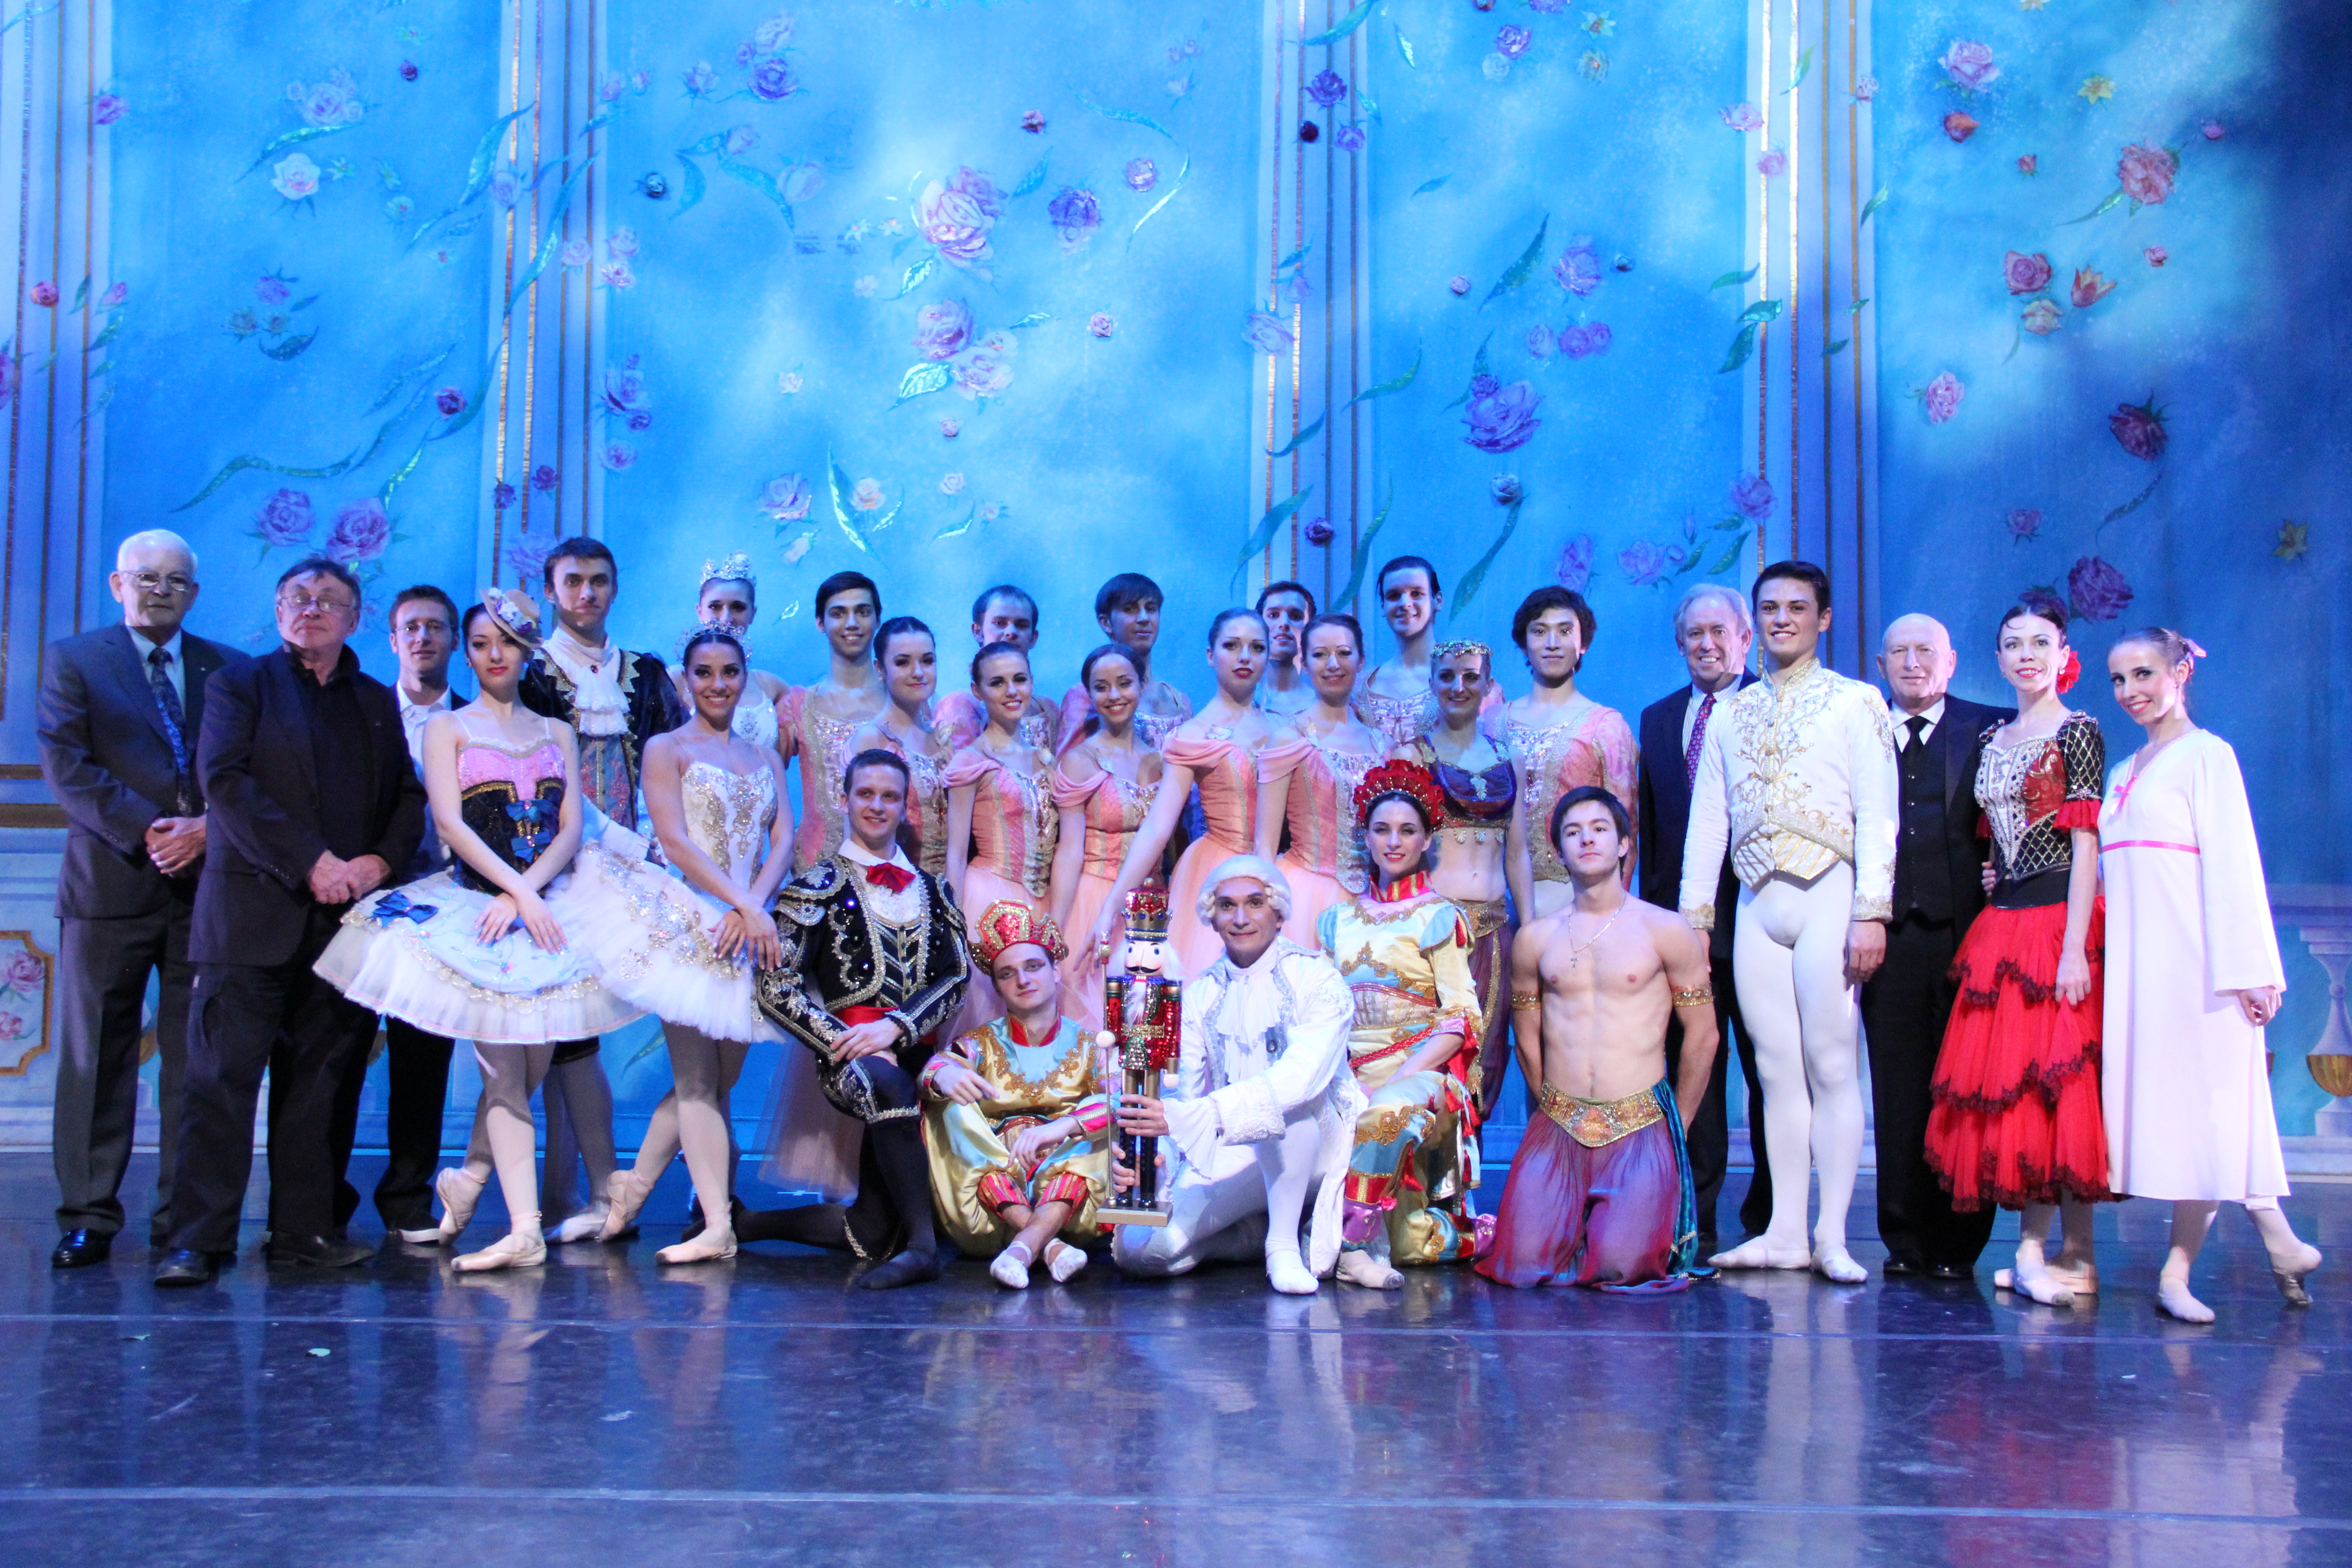 Calgary RAS Executives and Moscow Ballet company